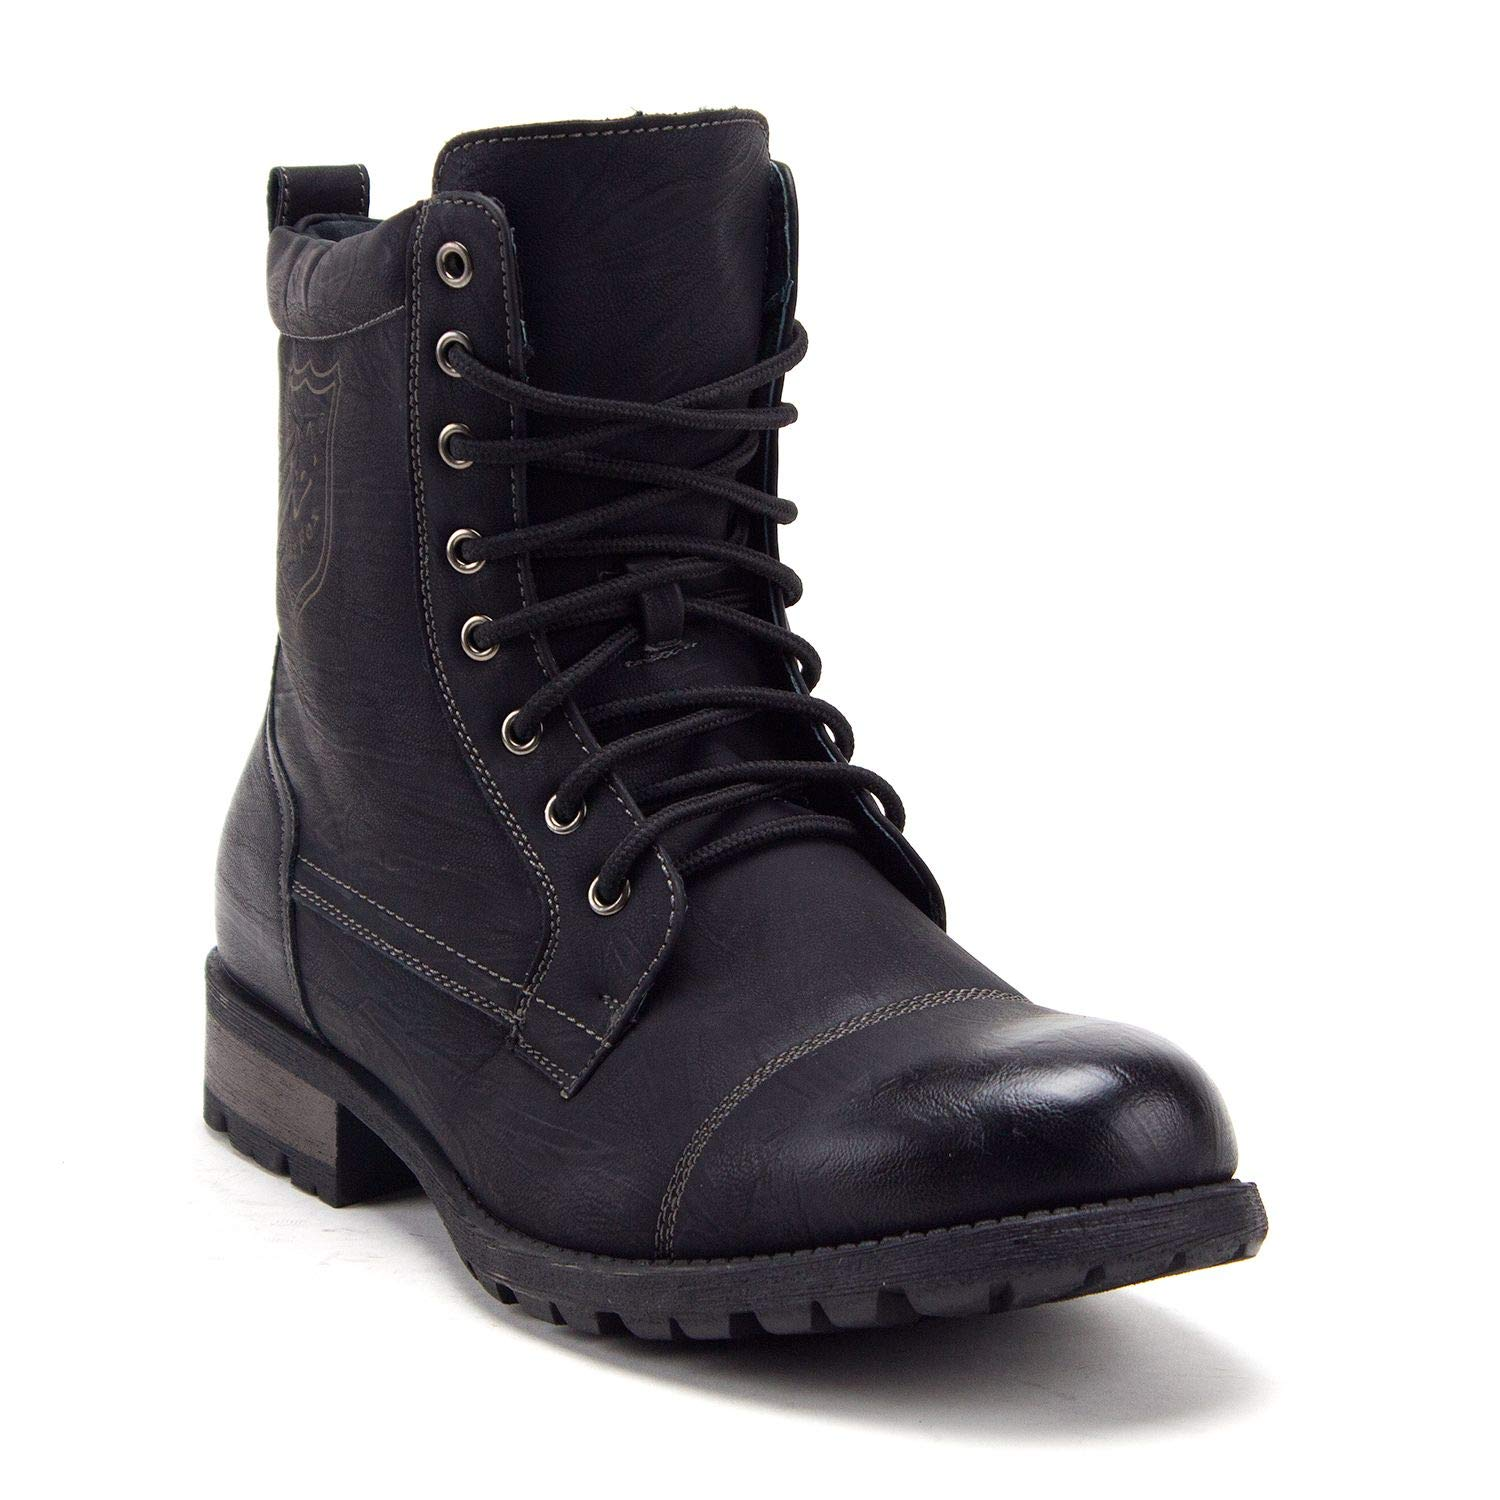 Jazamé Men's 661 Tall Military Fashion Cap Toe Lace Up Combat Motorcycle Boots